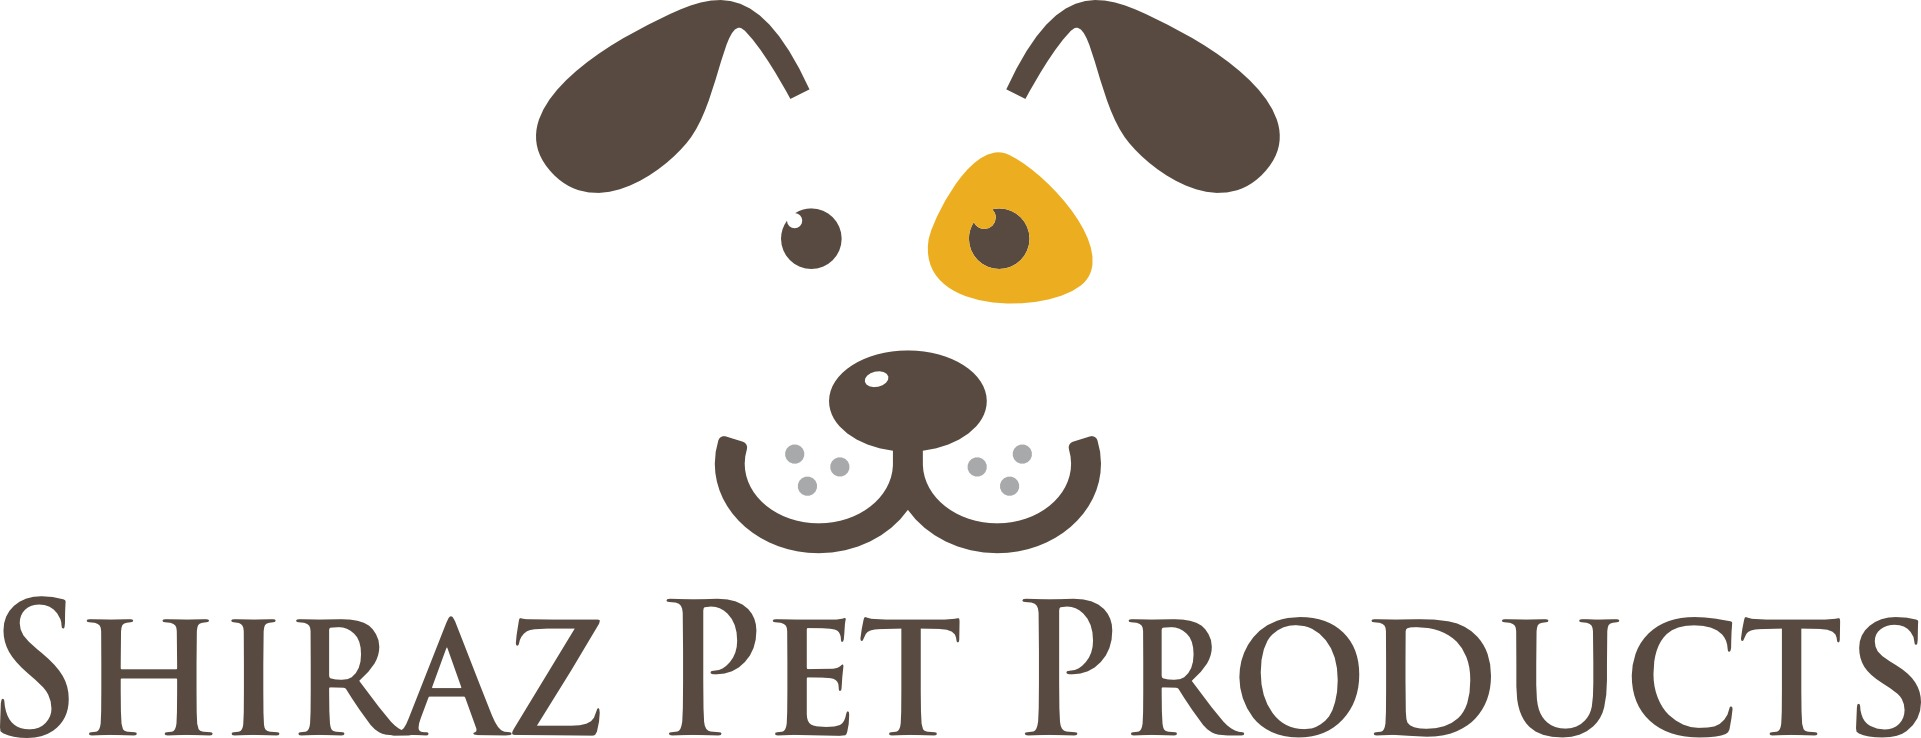 Shiraz Pet Products